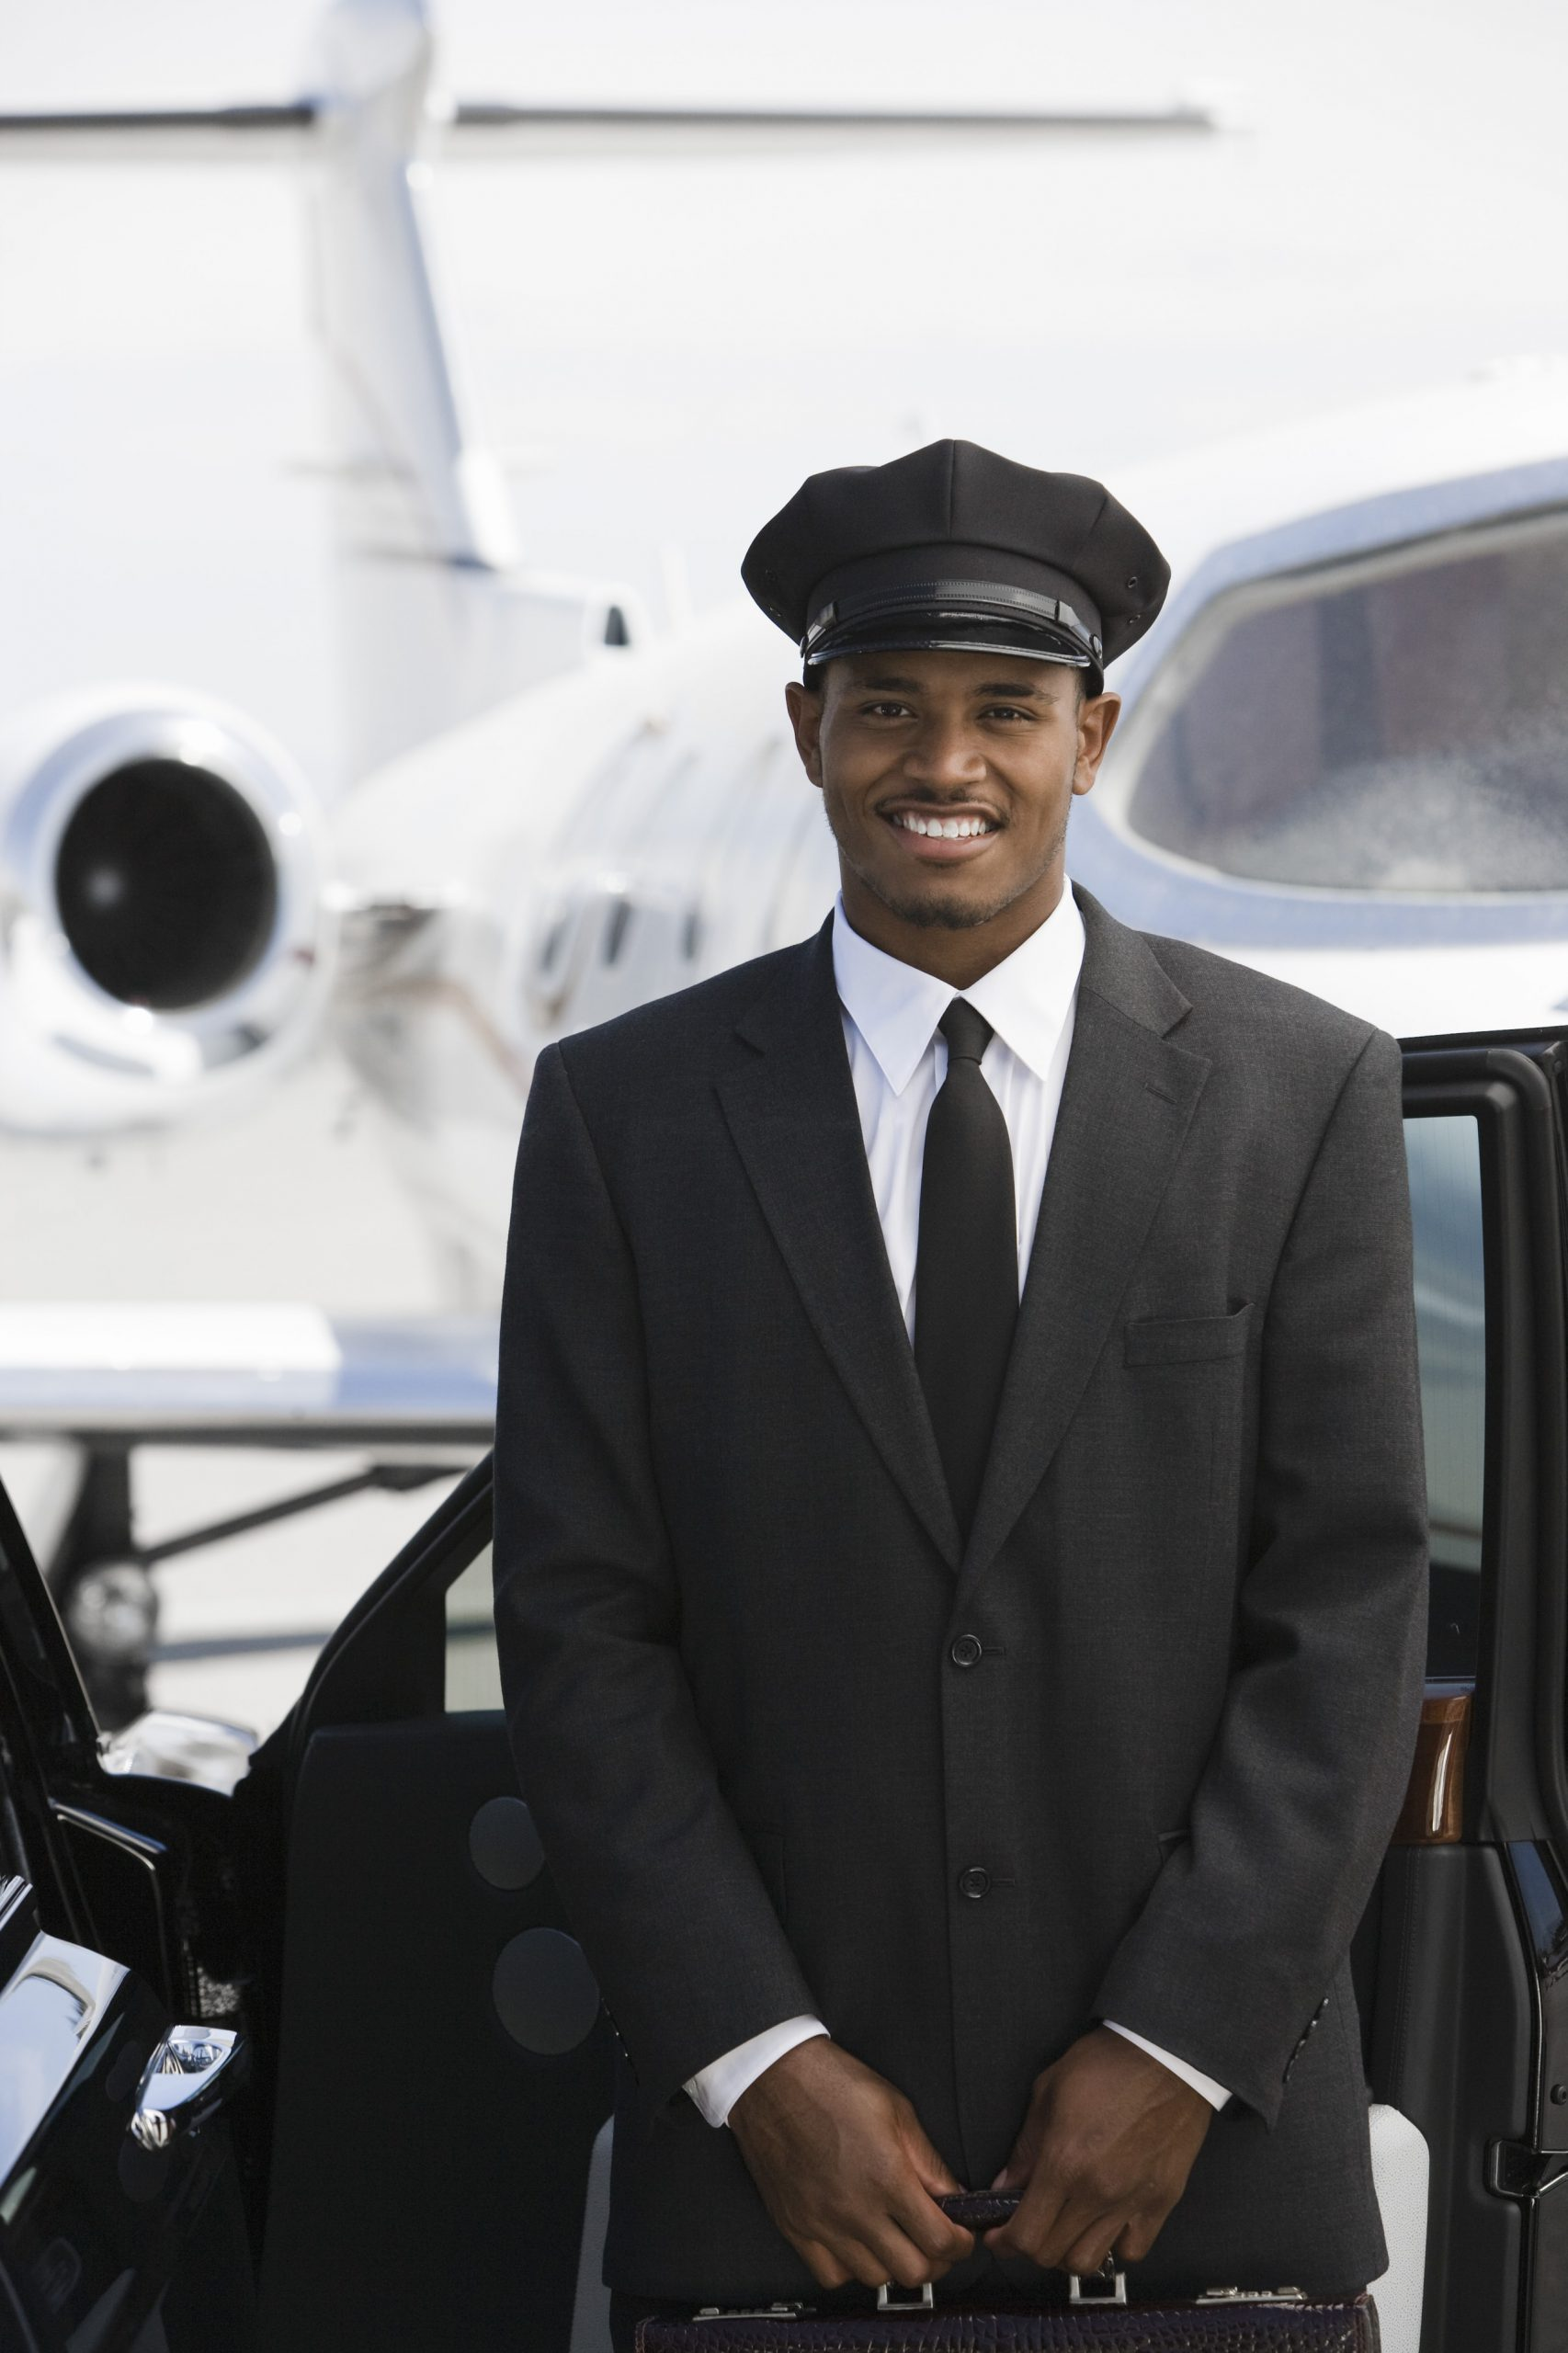 chauffeur in front of airplane